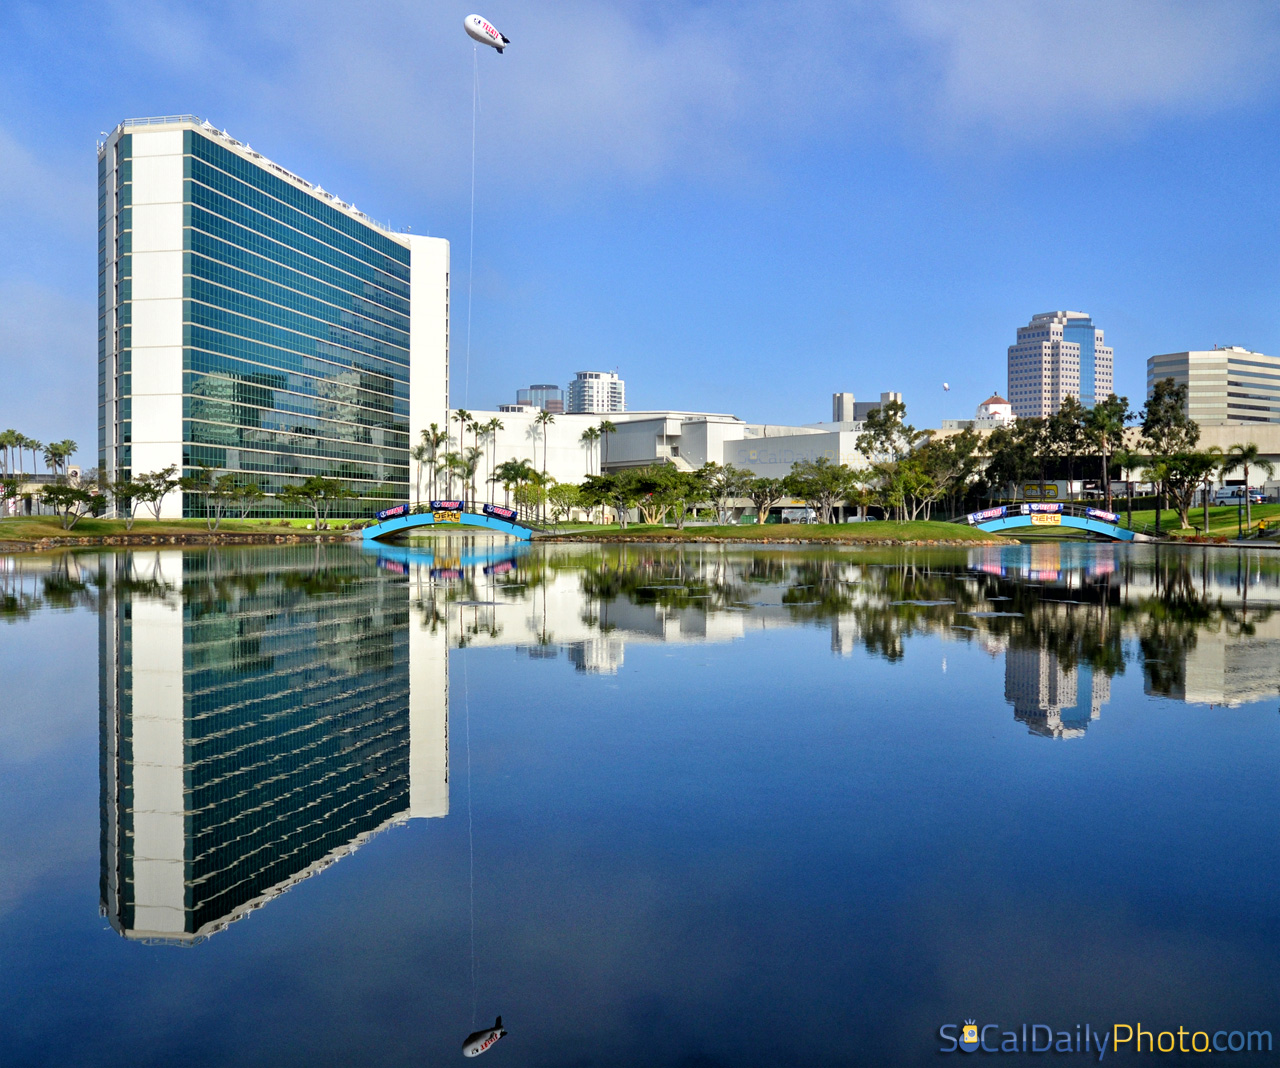 Long Beach Hyatt Regency Lagoon Reflection